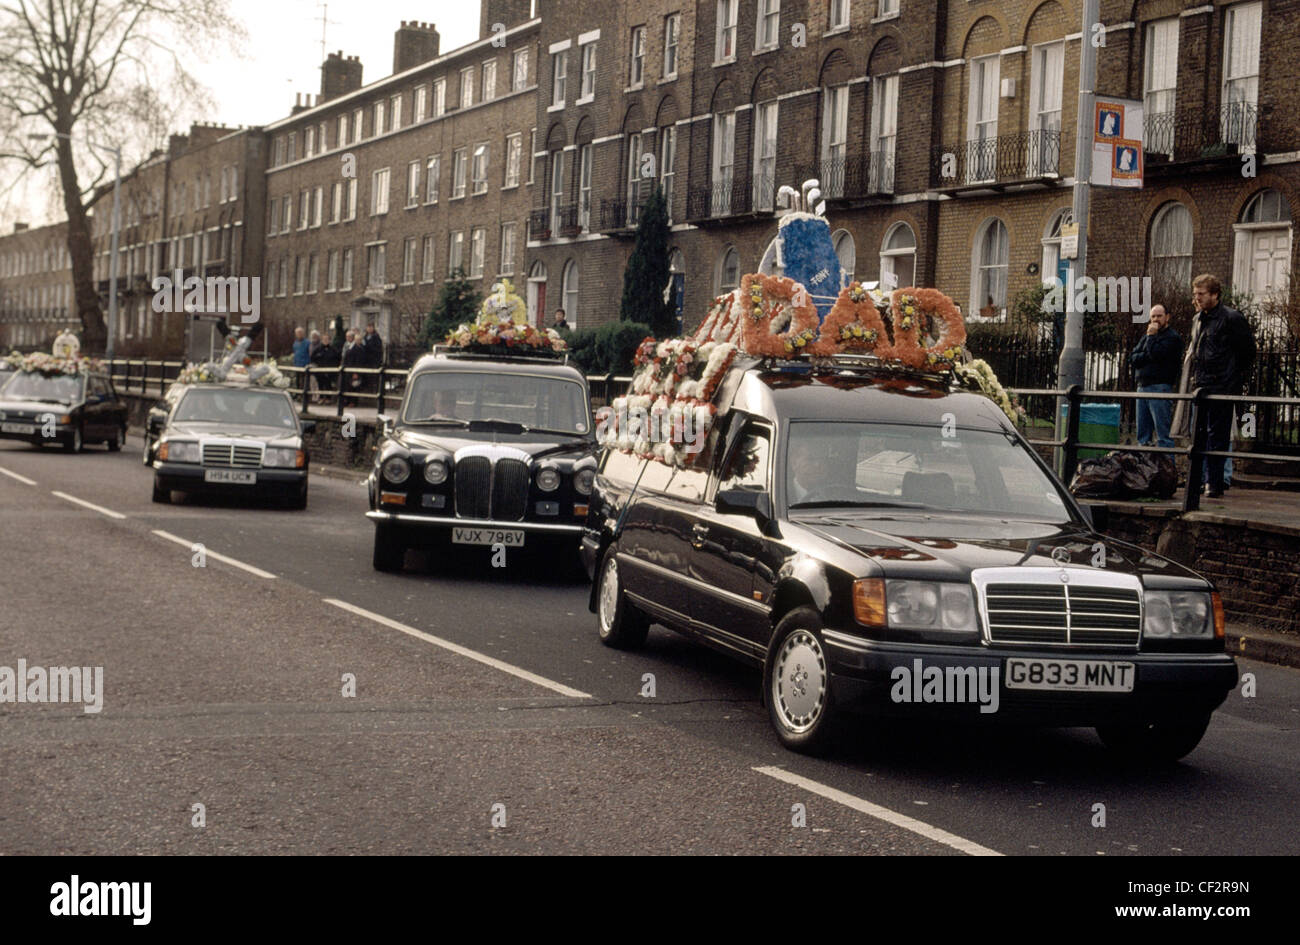 Procession Of Funeral Cars Laden With Flowers On The Roof Follow The